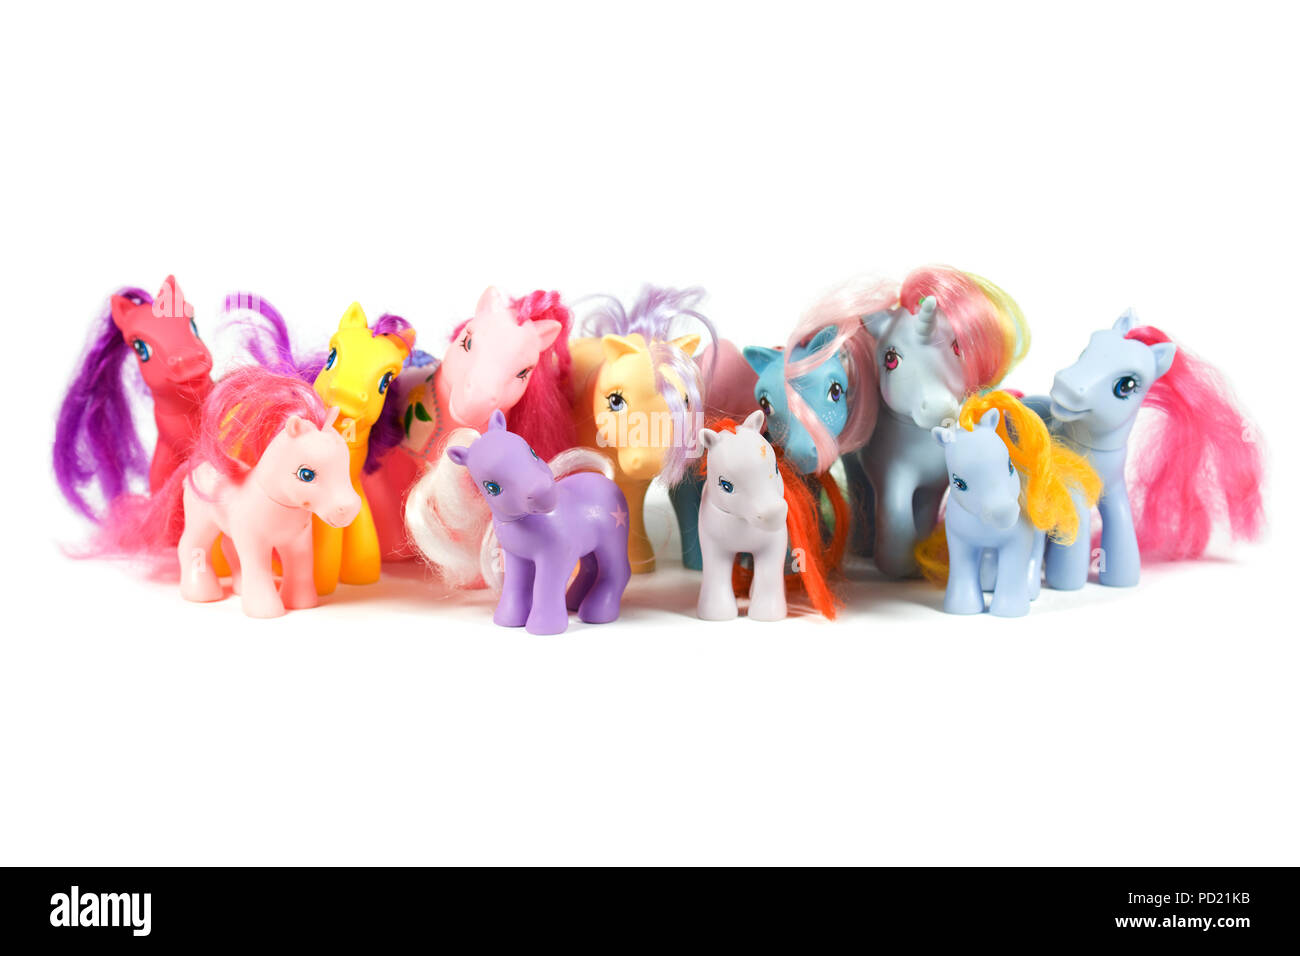 portait of my little ponies toys on white background - Stock Image